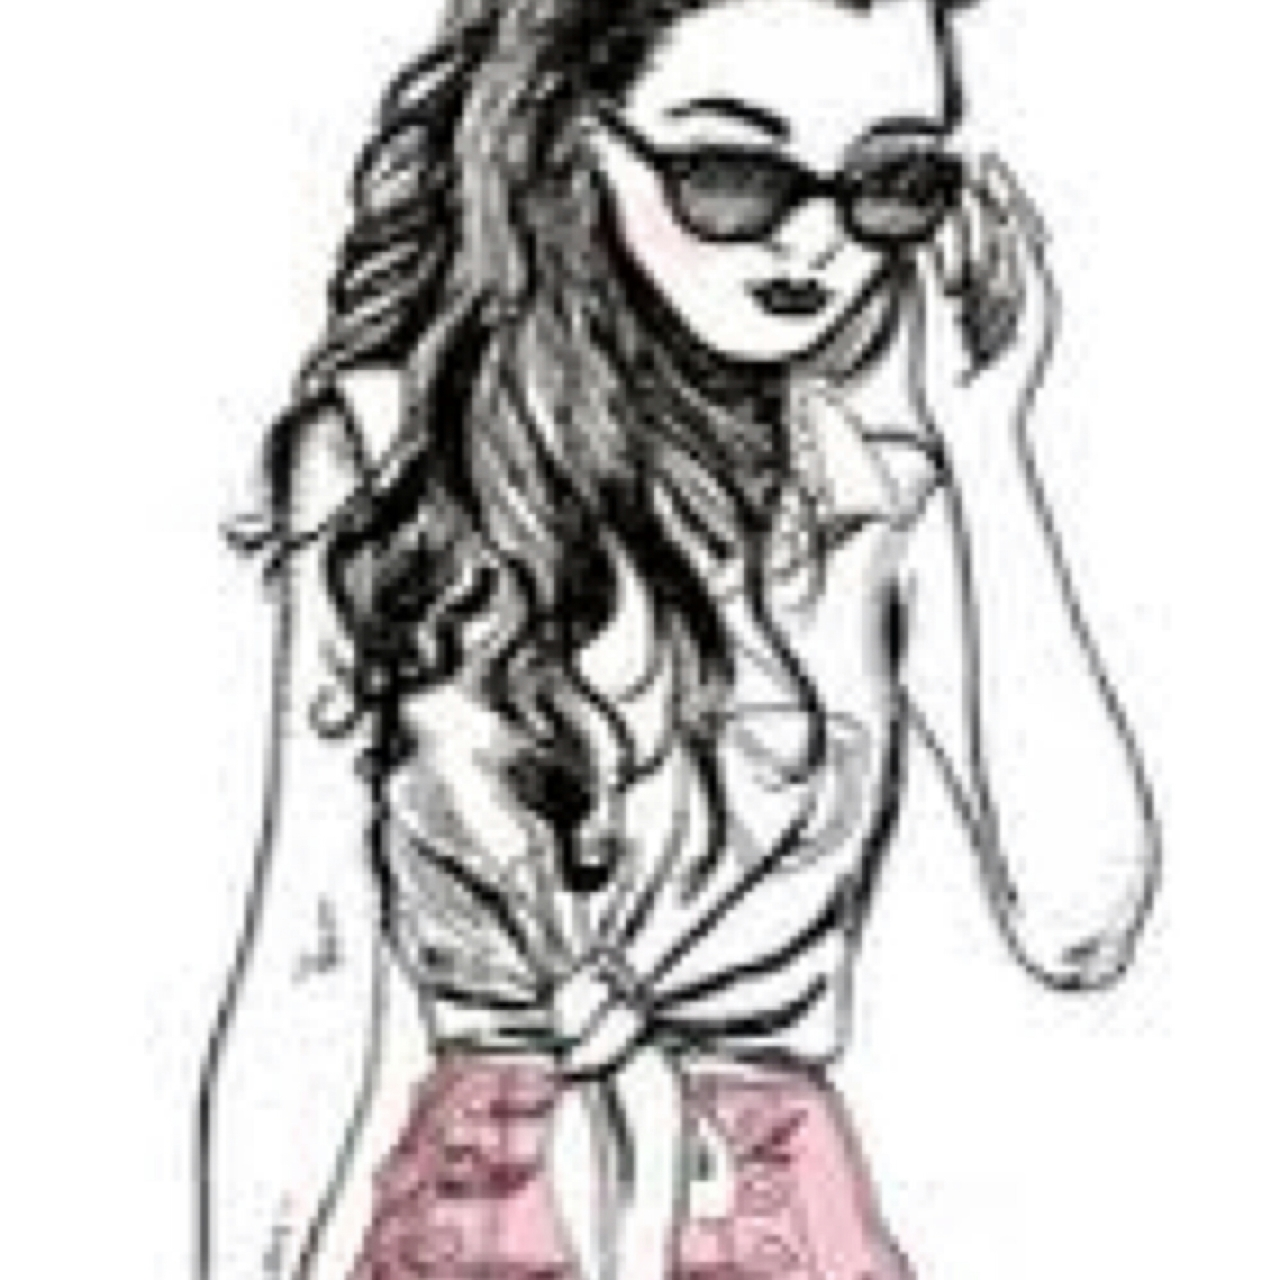 312 Images About Chicas En Blanco Y Negro Dibujos On We Heart It See More About Girl Art And Outline